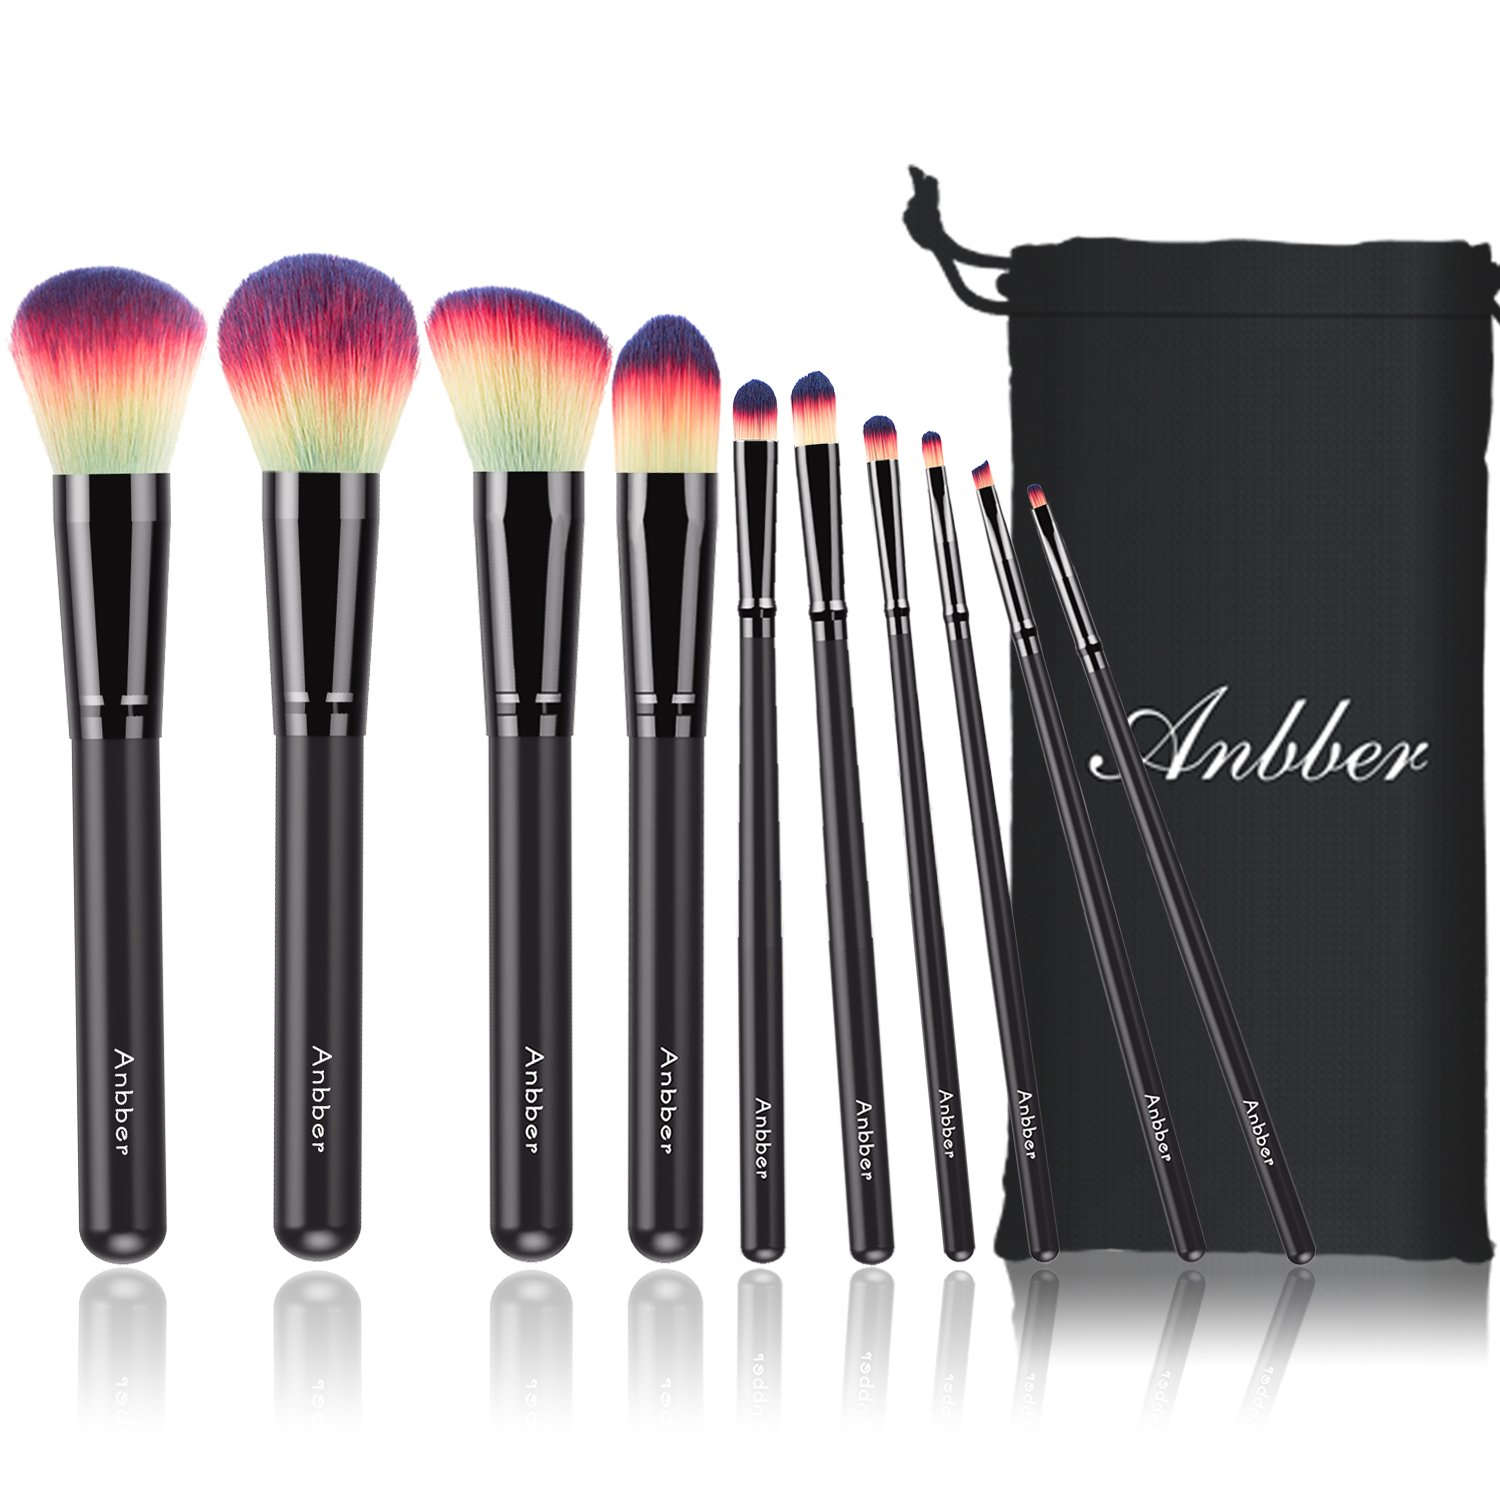 Makeup Brush Sets Kit Anbber 10Pcs Makeup Brushes with Makeup Organizer Bag Blush Foundation Concealer Contour Eyeliner Eye Shadow Powder Lip Brush AB-MB003